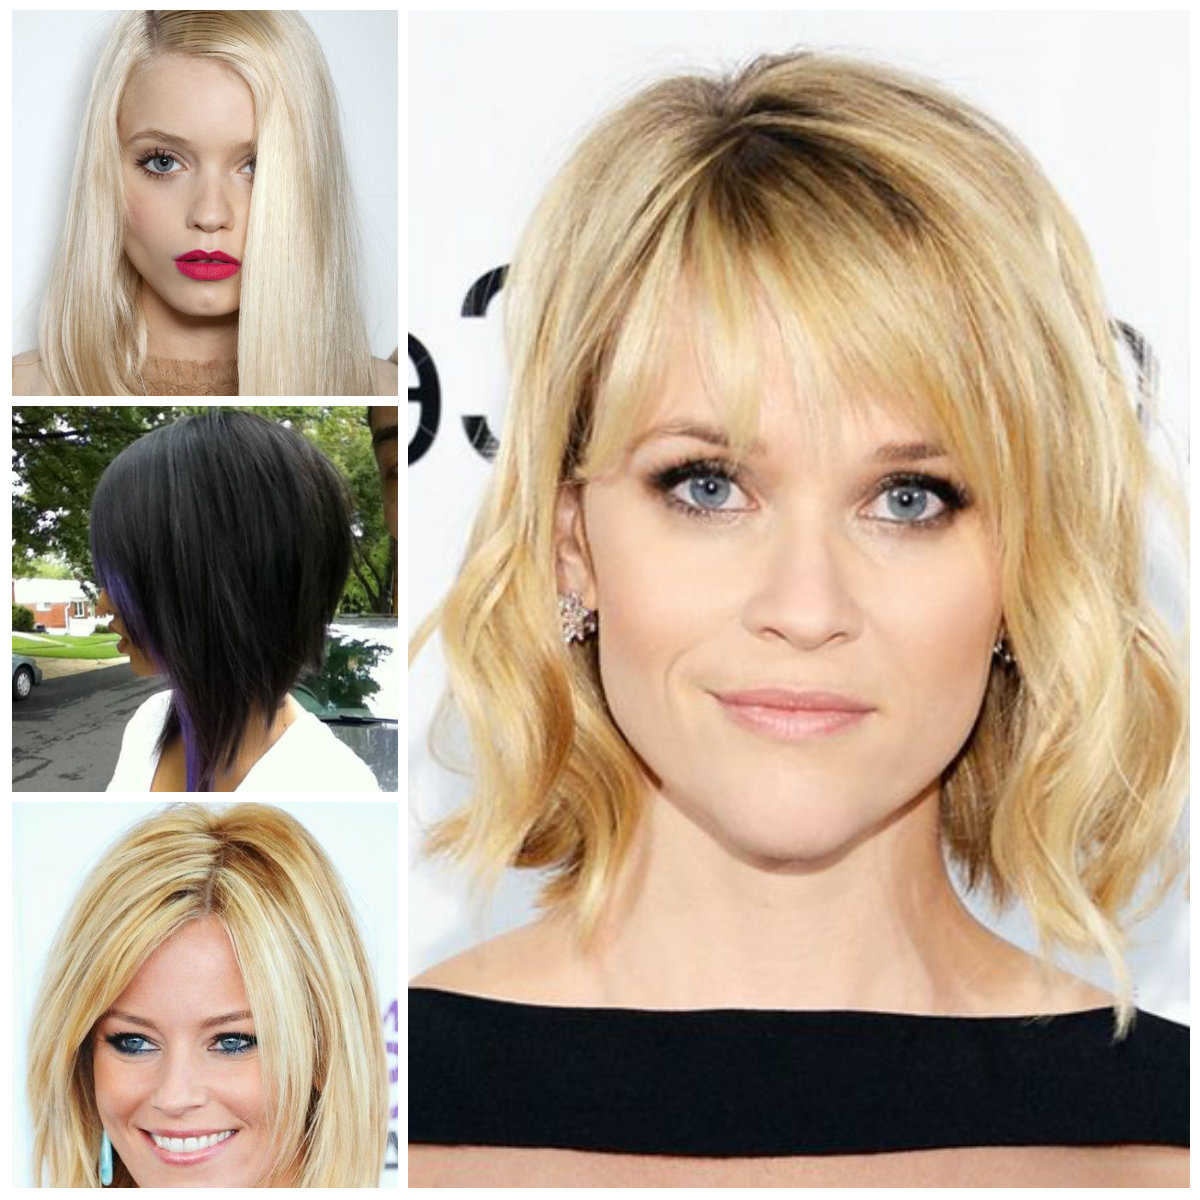 Most Current Medium Hairstyles For Spring Inside Haircuts, Hairstyles 2019 And Hair Colors For Short Long & Medium Hair (View 13 of 20)